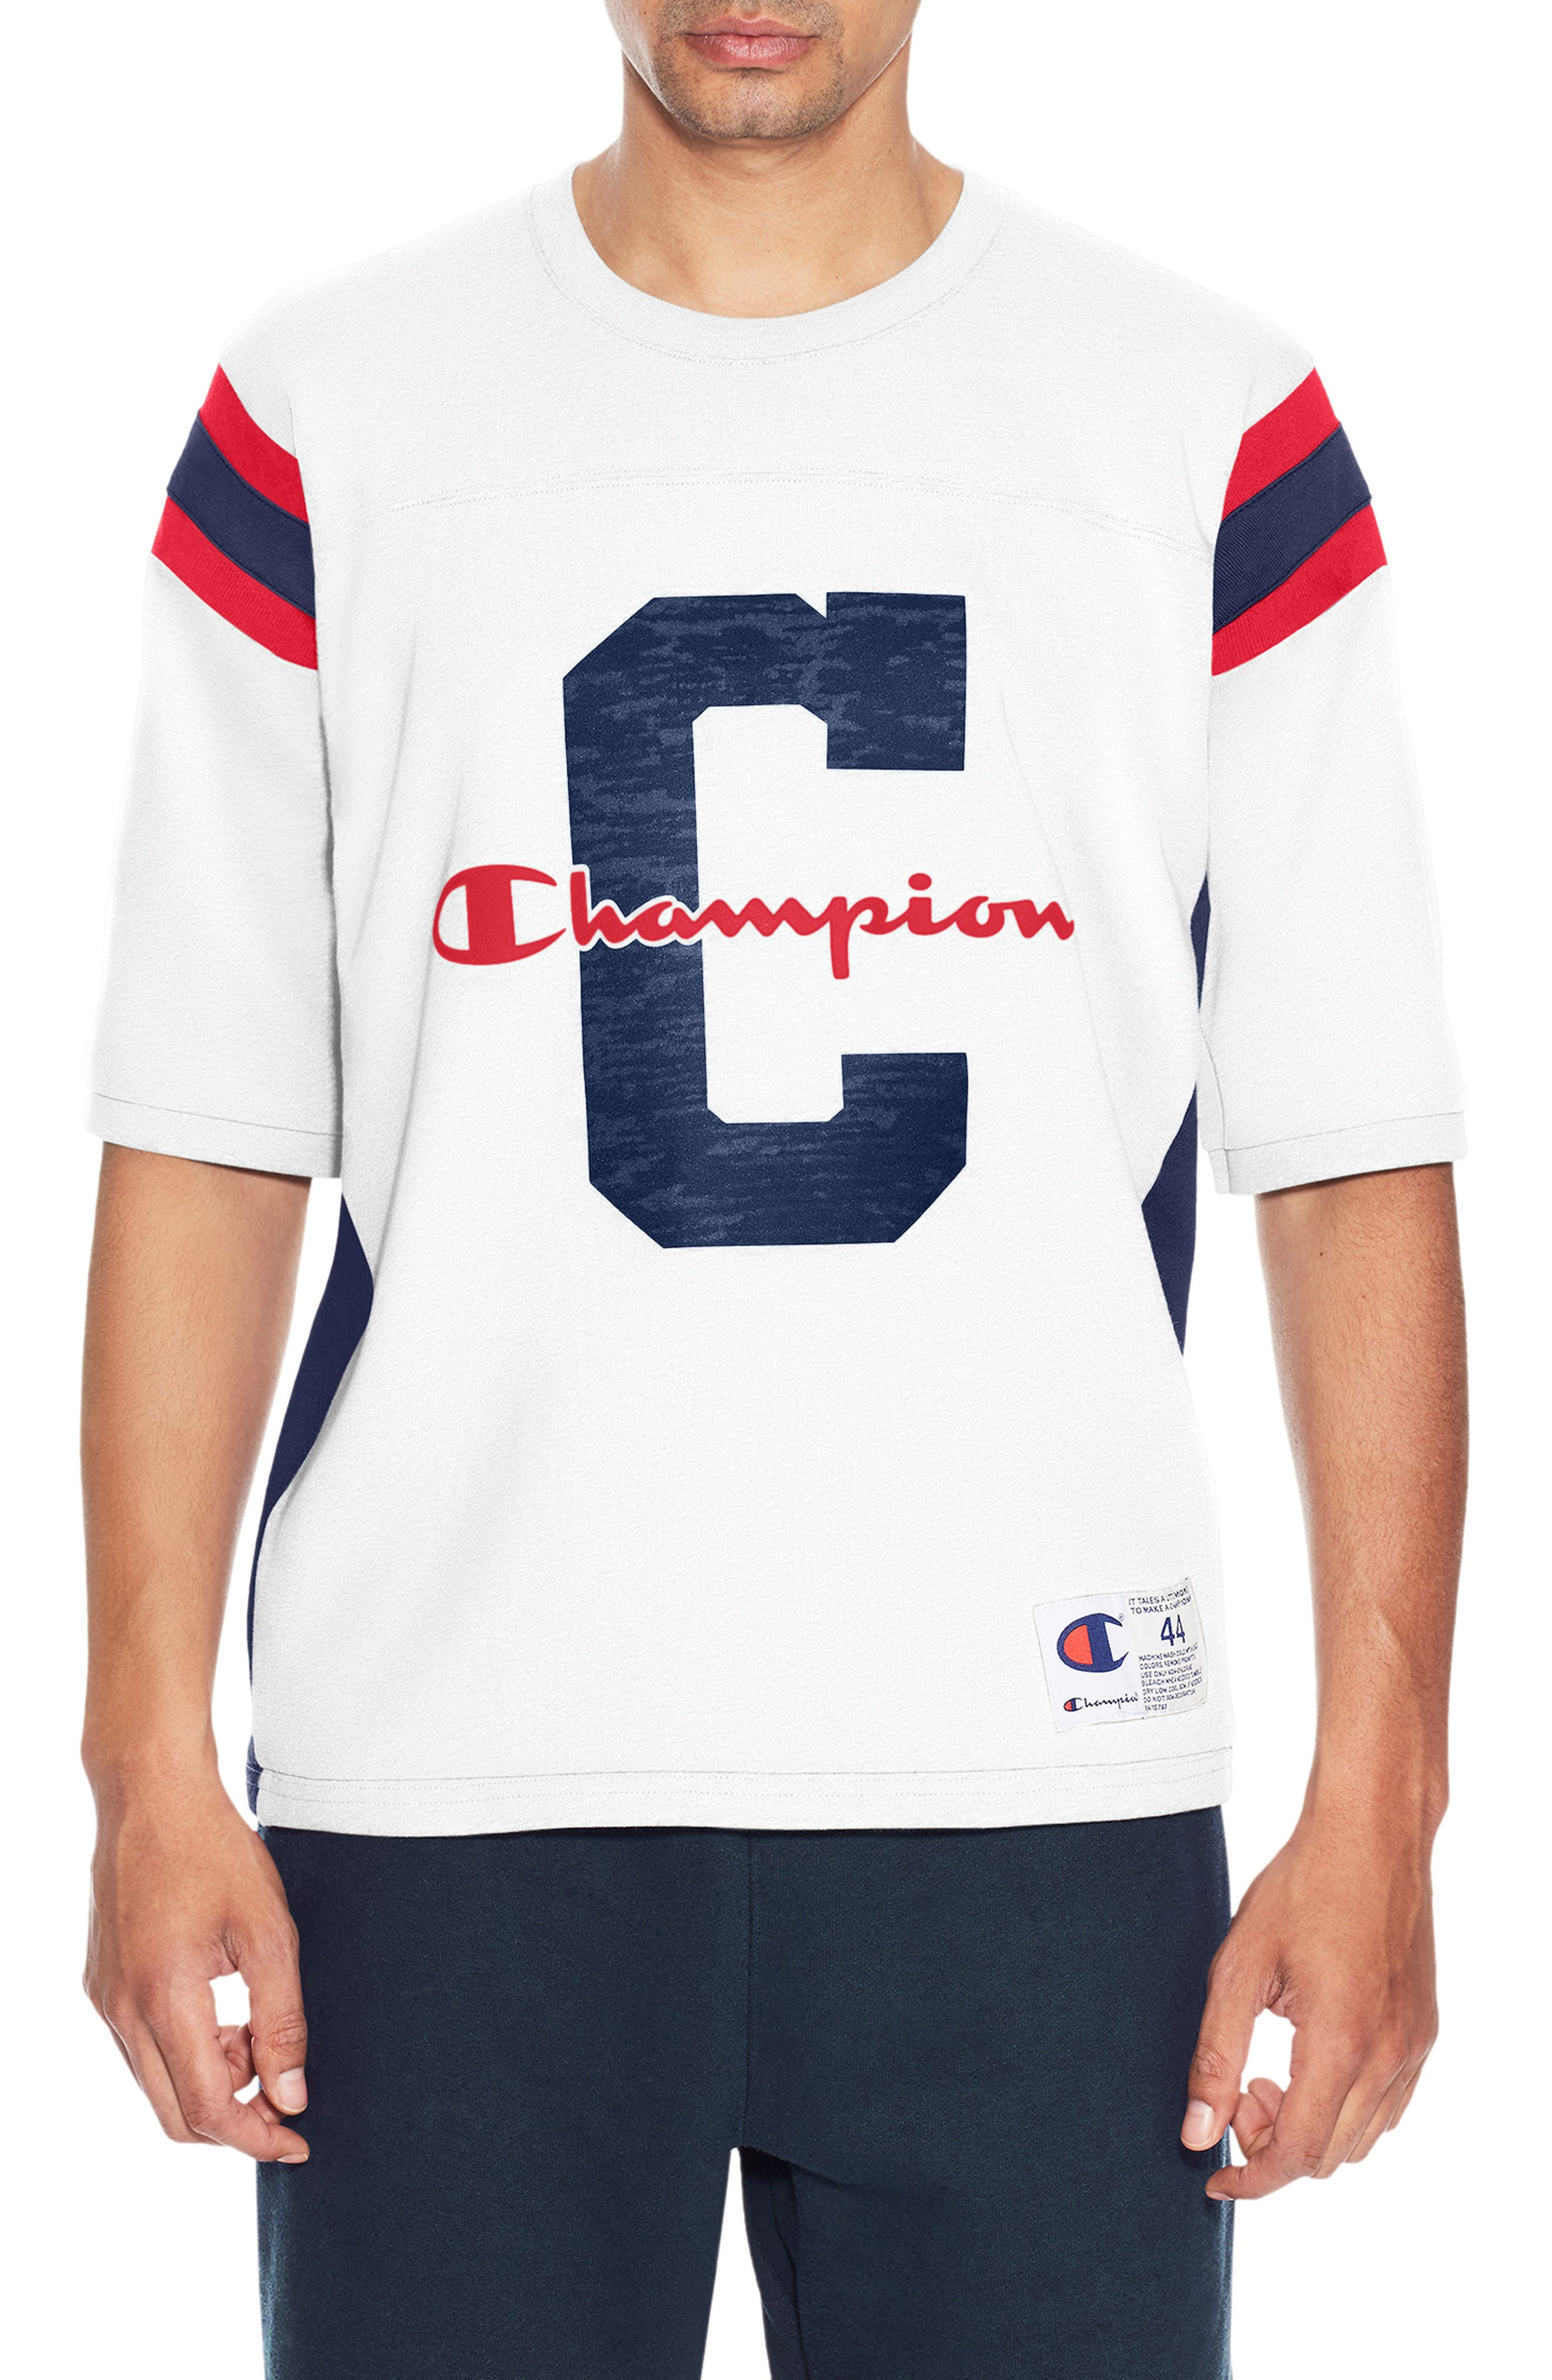 Heavyweight Football Jersey T-Shirt,                         Main,                         color, White/ Imperial Indigio